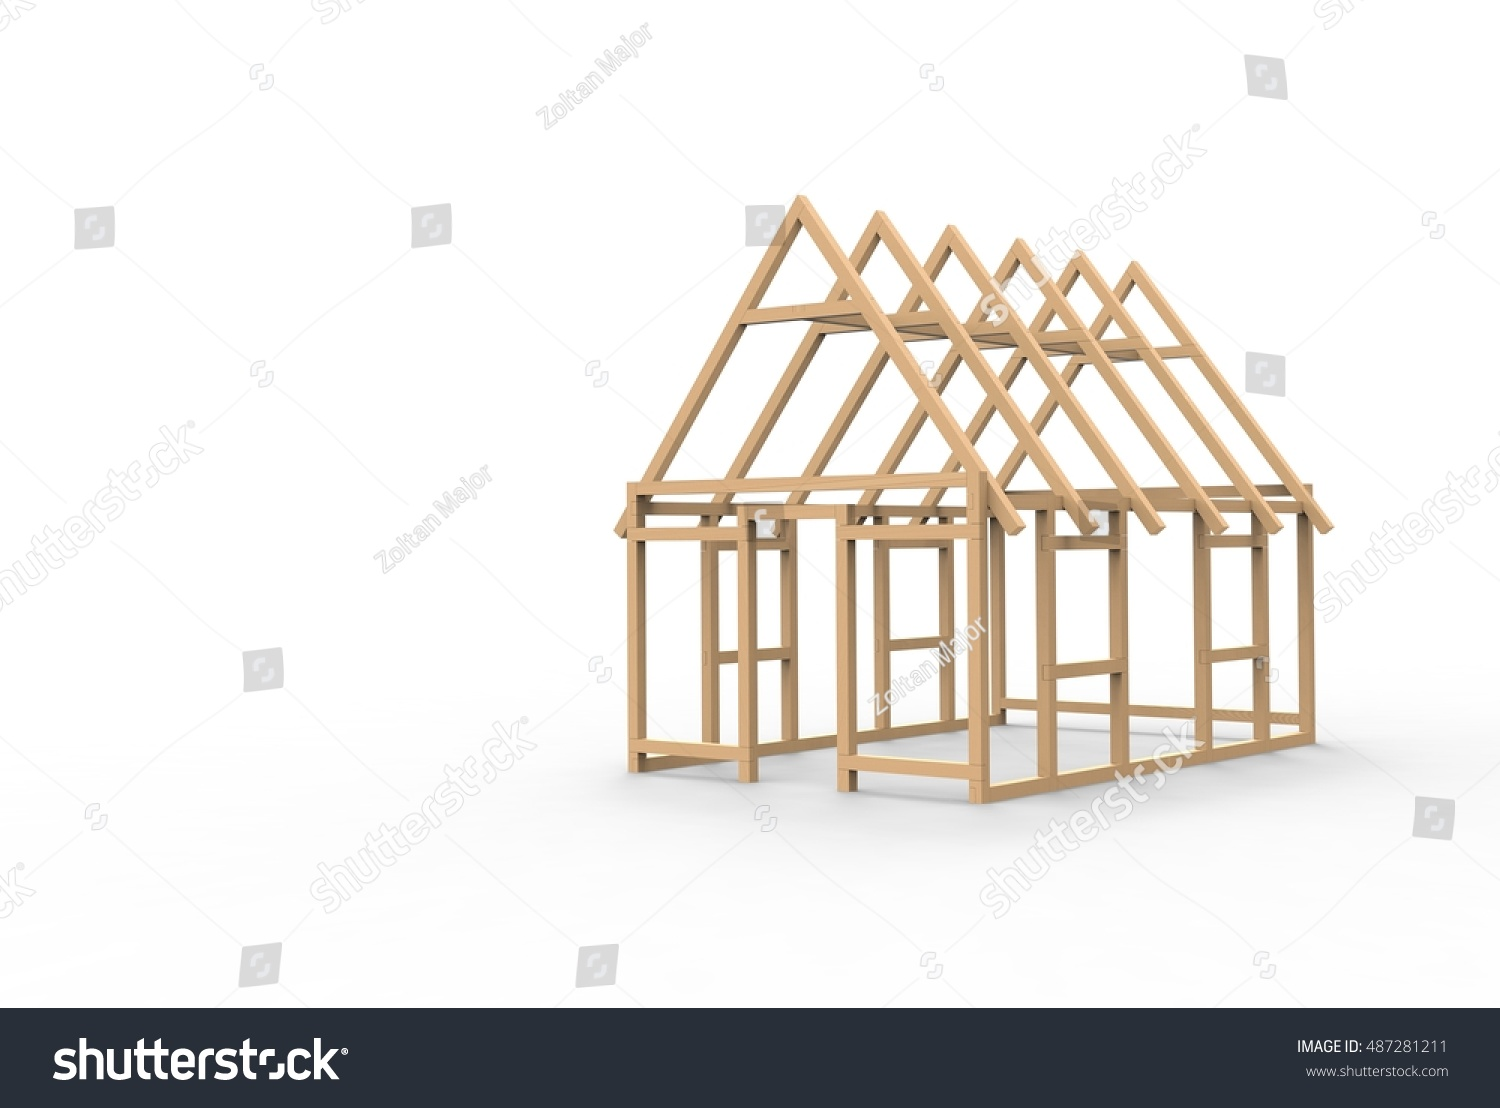 Charmant 3D CAD Model Of A Wooden House Frame